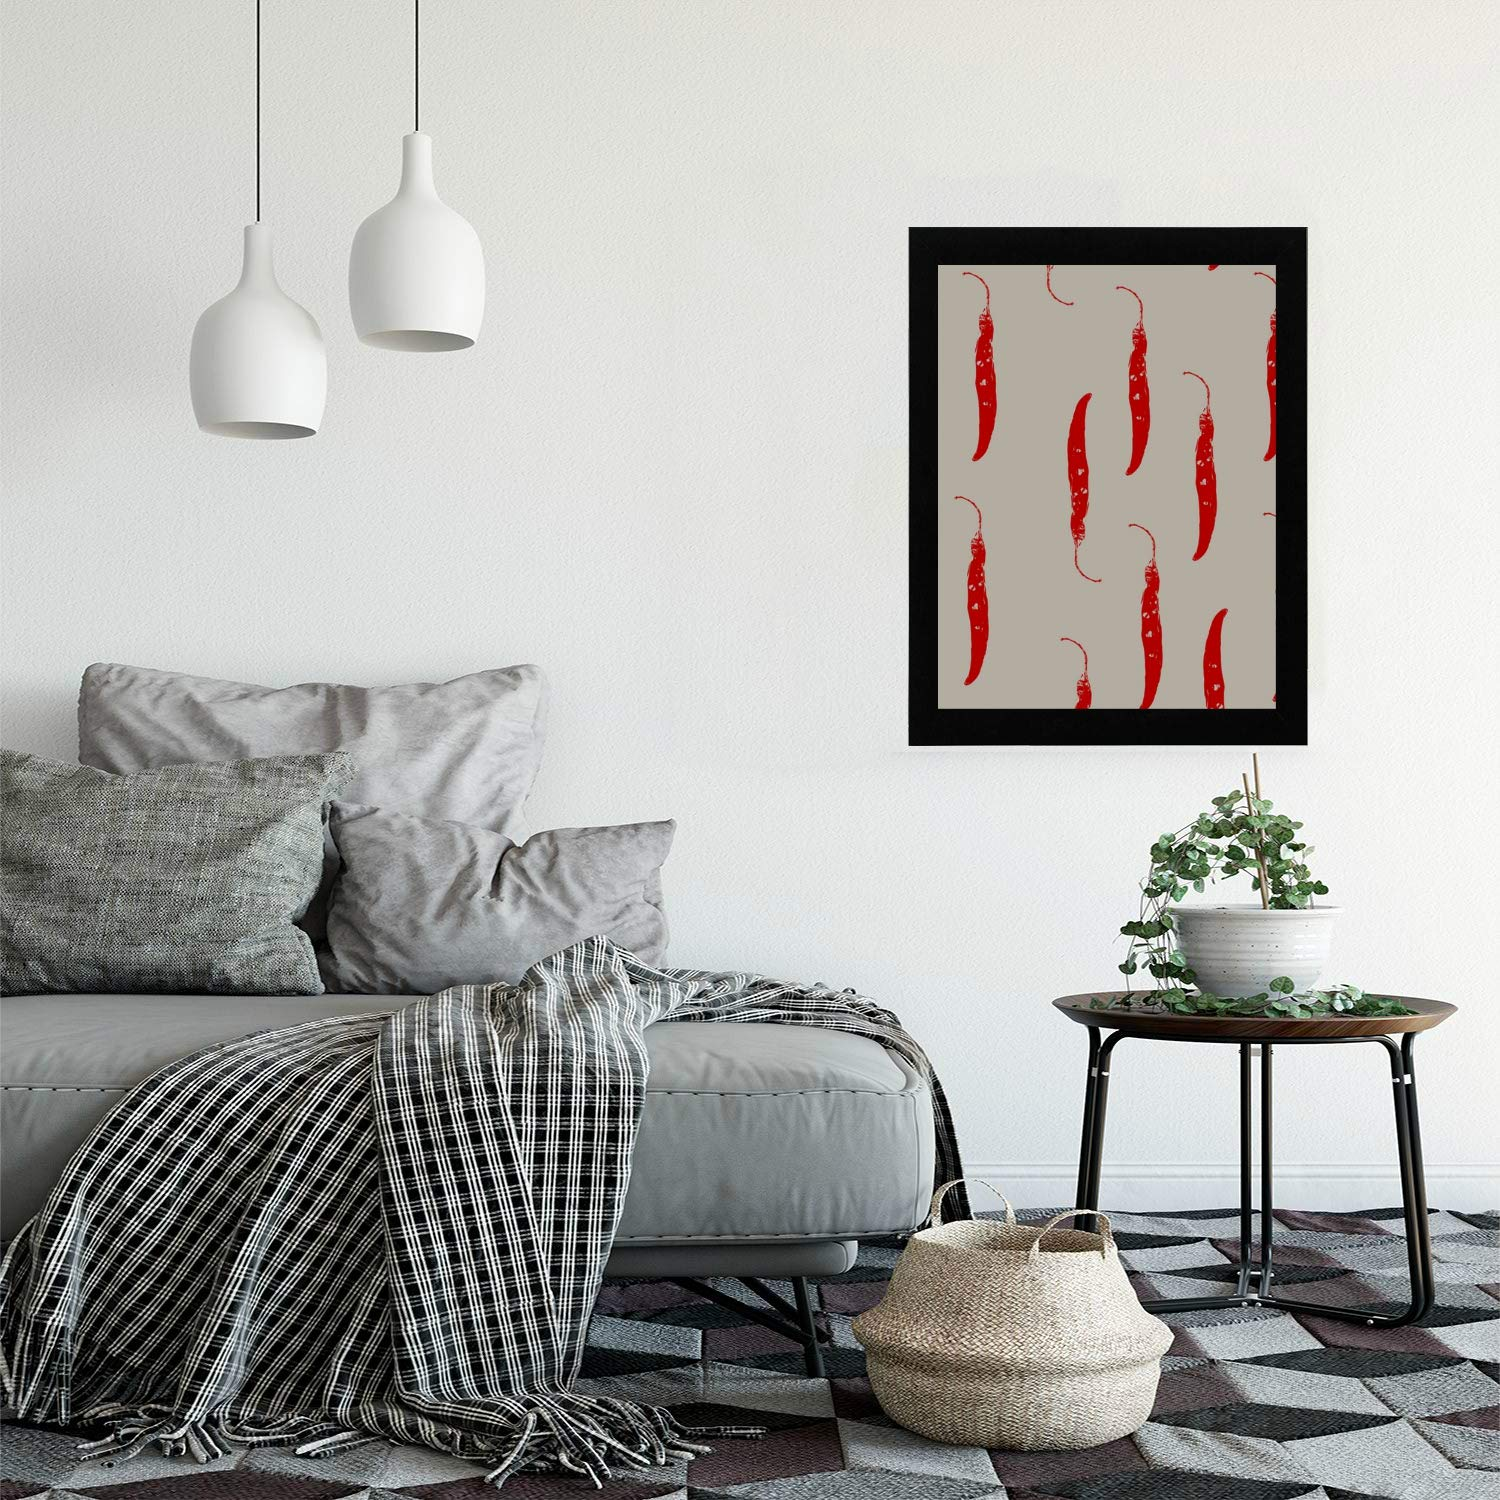 Bathroom Wall Hangings Chill Red Spicy Pepper Modern Wooden Framed Vintage Wall Art Painting Print Hangings For Bedroom Living Room Baby Room Wall Decor Amazon In Home Kitchen